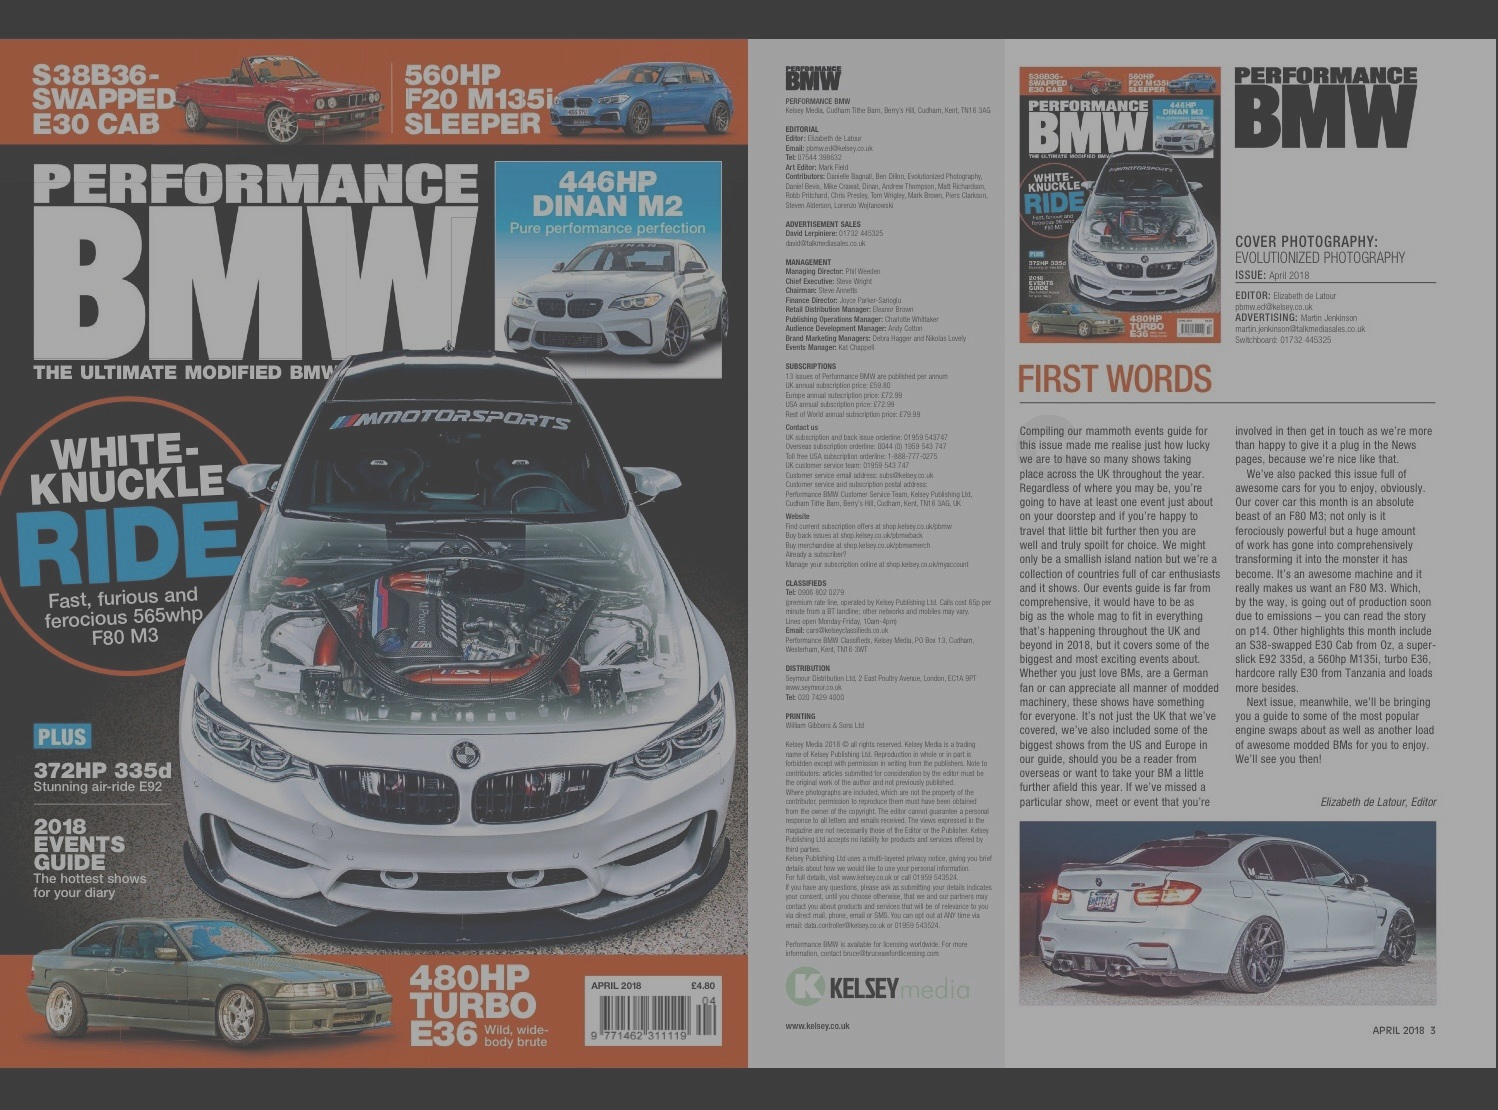 Featured in the World's Most Respected BMW Magazine's